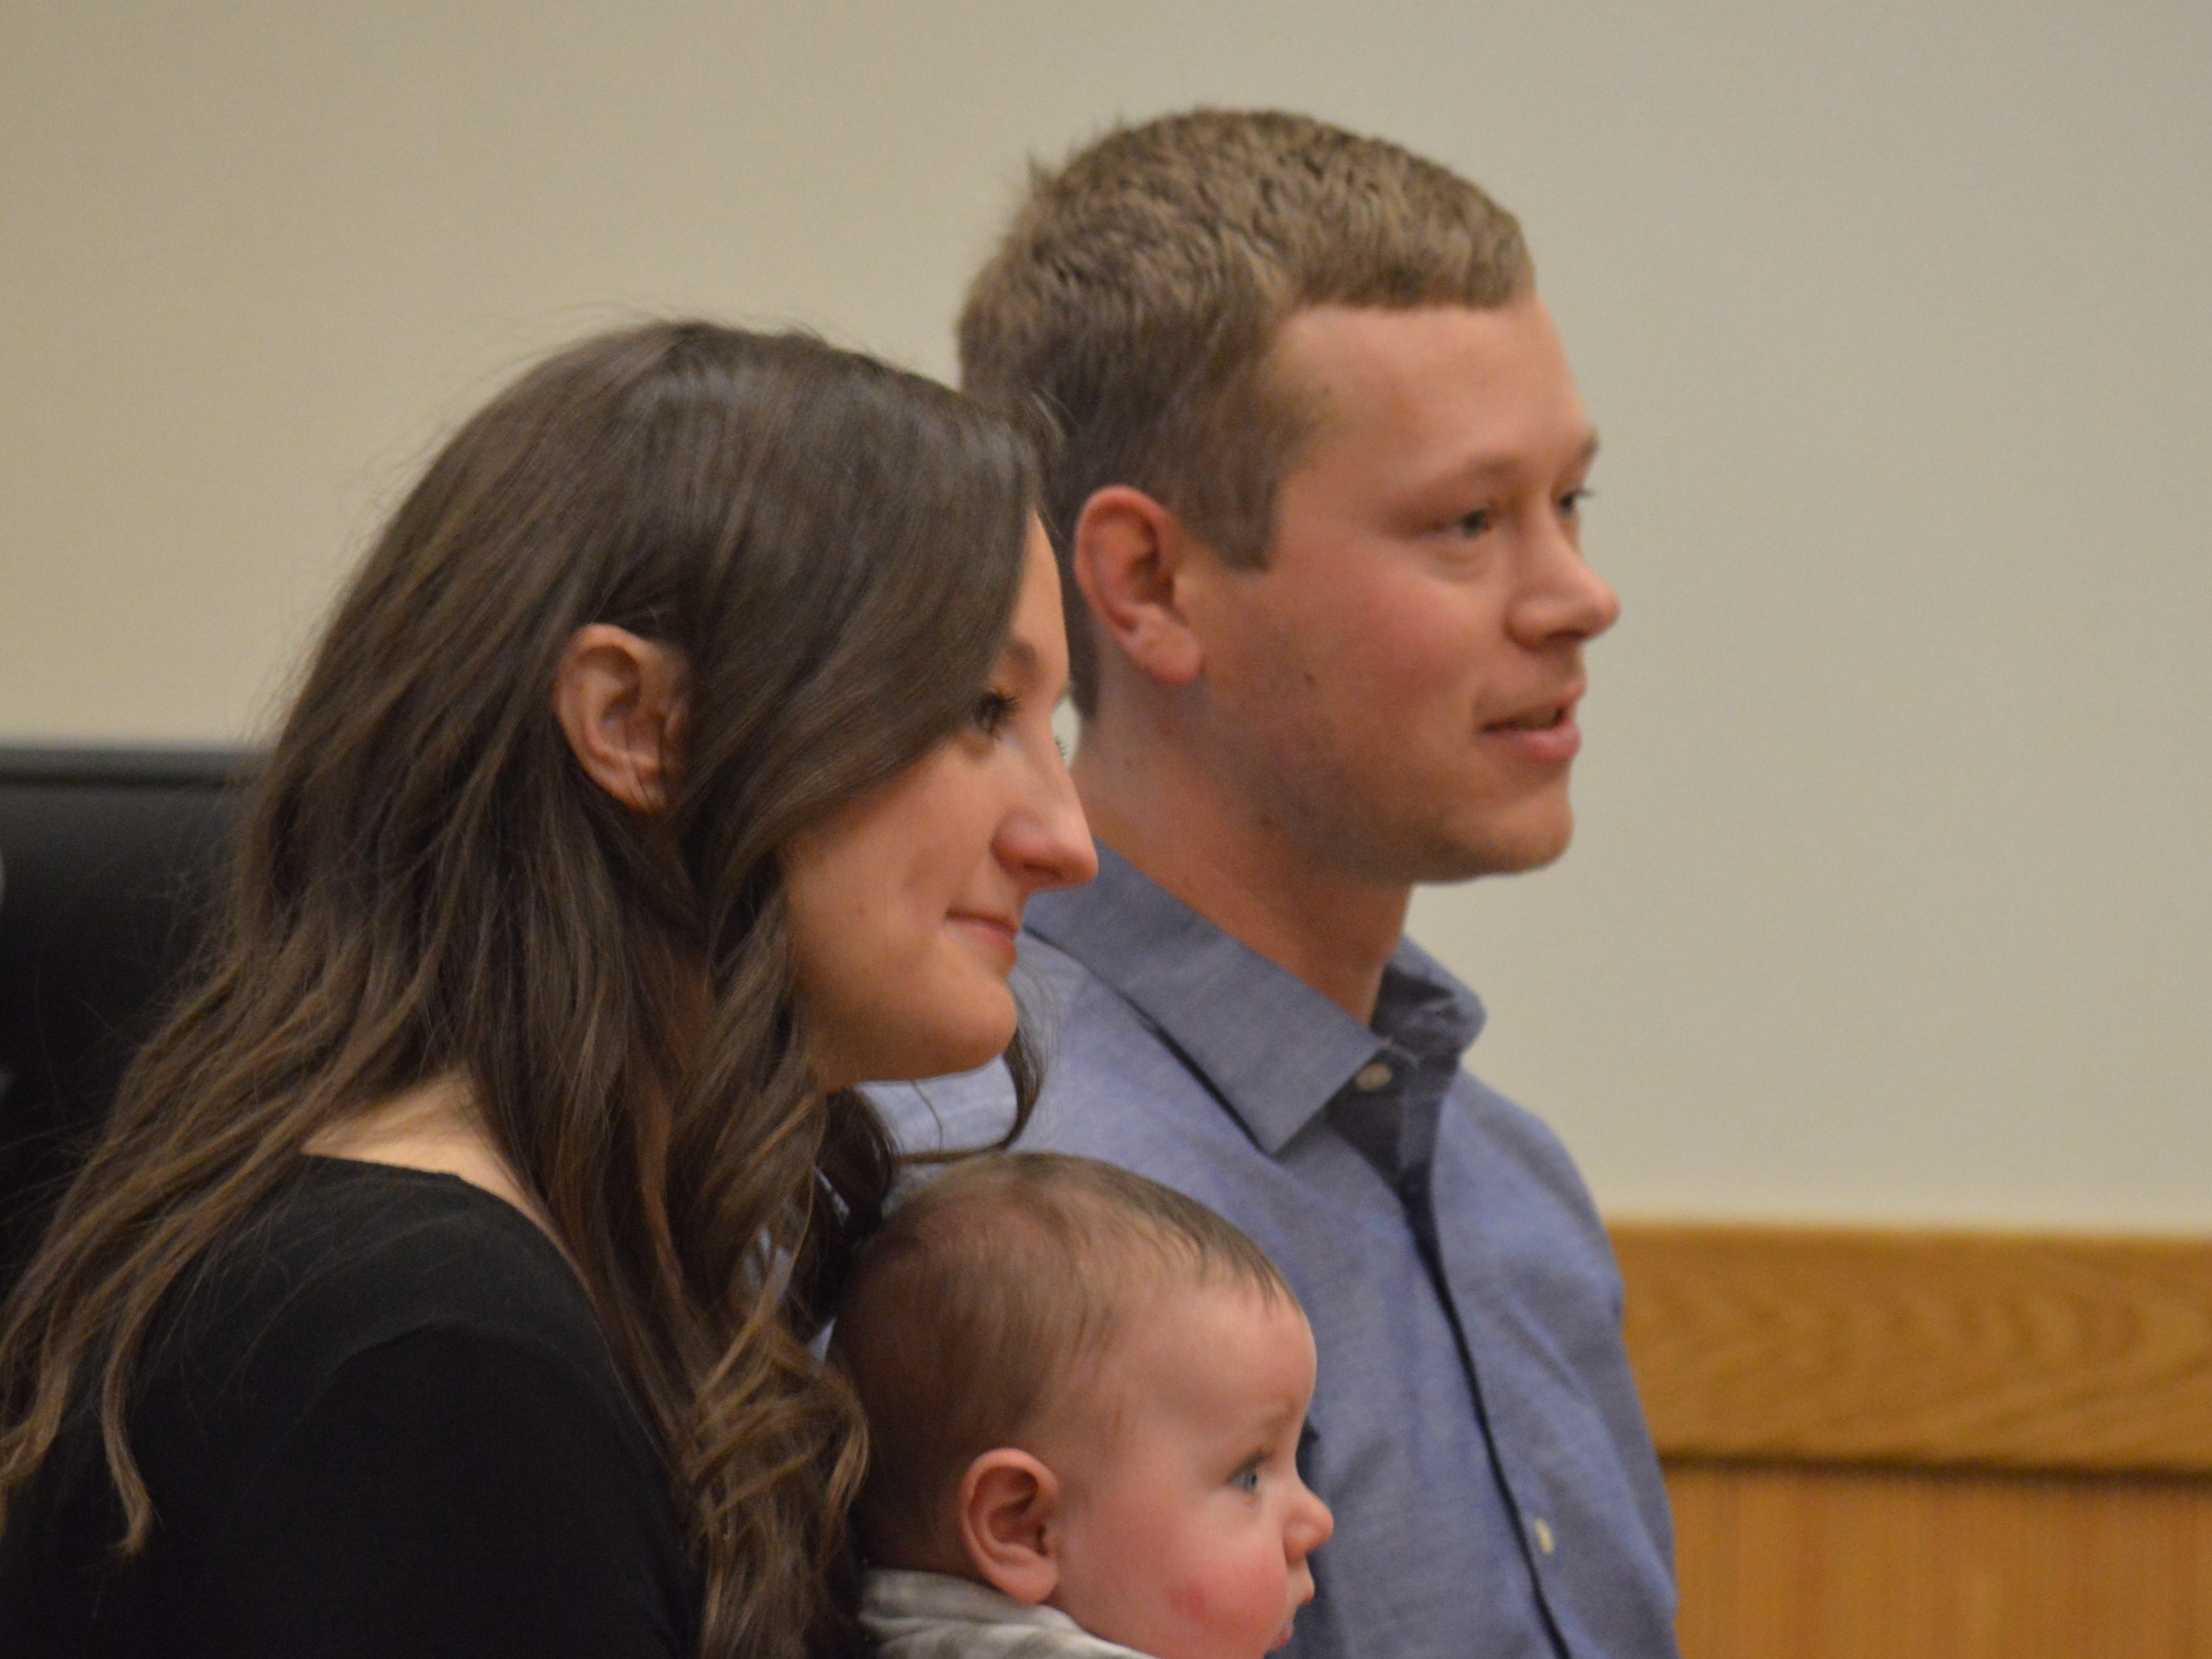 Chad and Christine Church tell Livingston County Chief Judge Miriam Cavanaugh what it means to legally adopt their 5-month-old son Wyatt. His adoption was finalized Nov. 20, 2018.